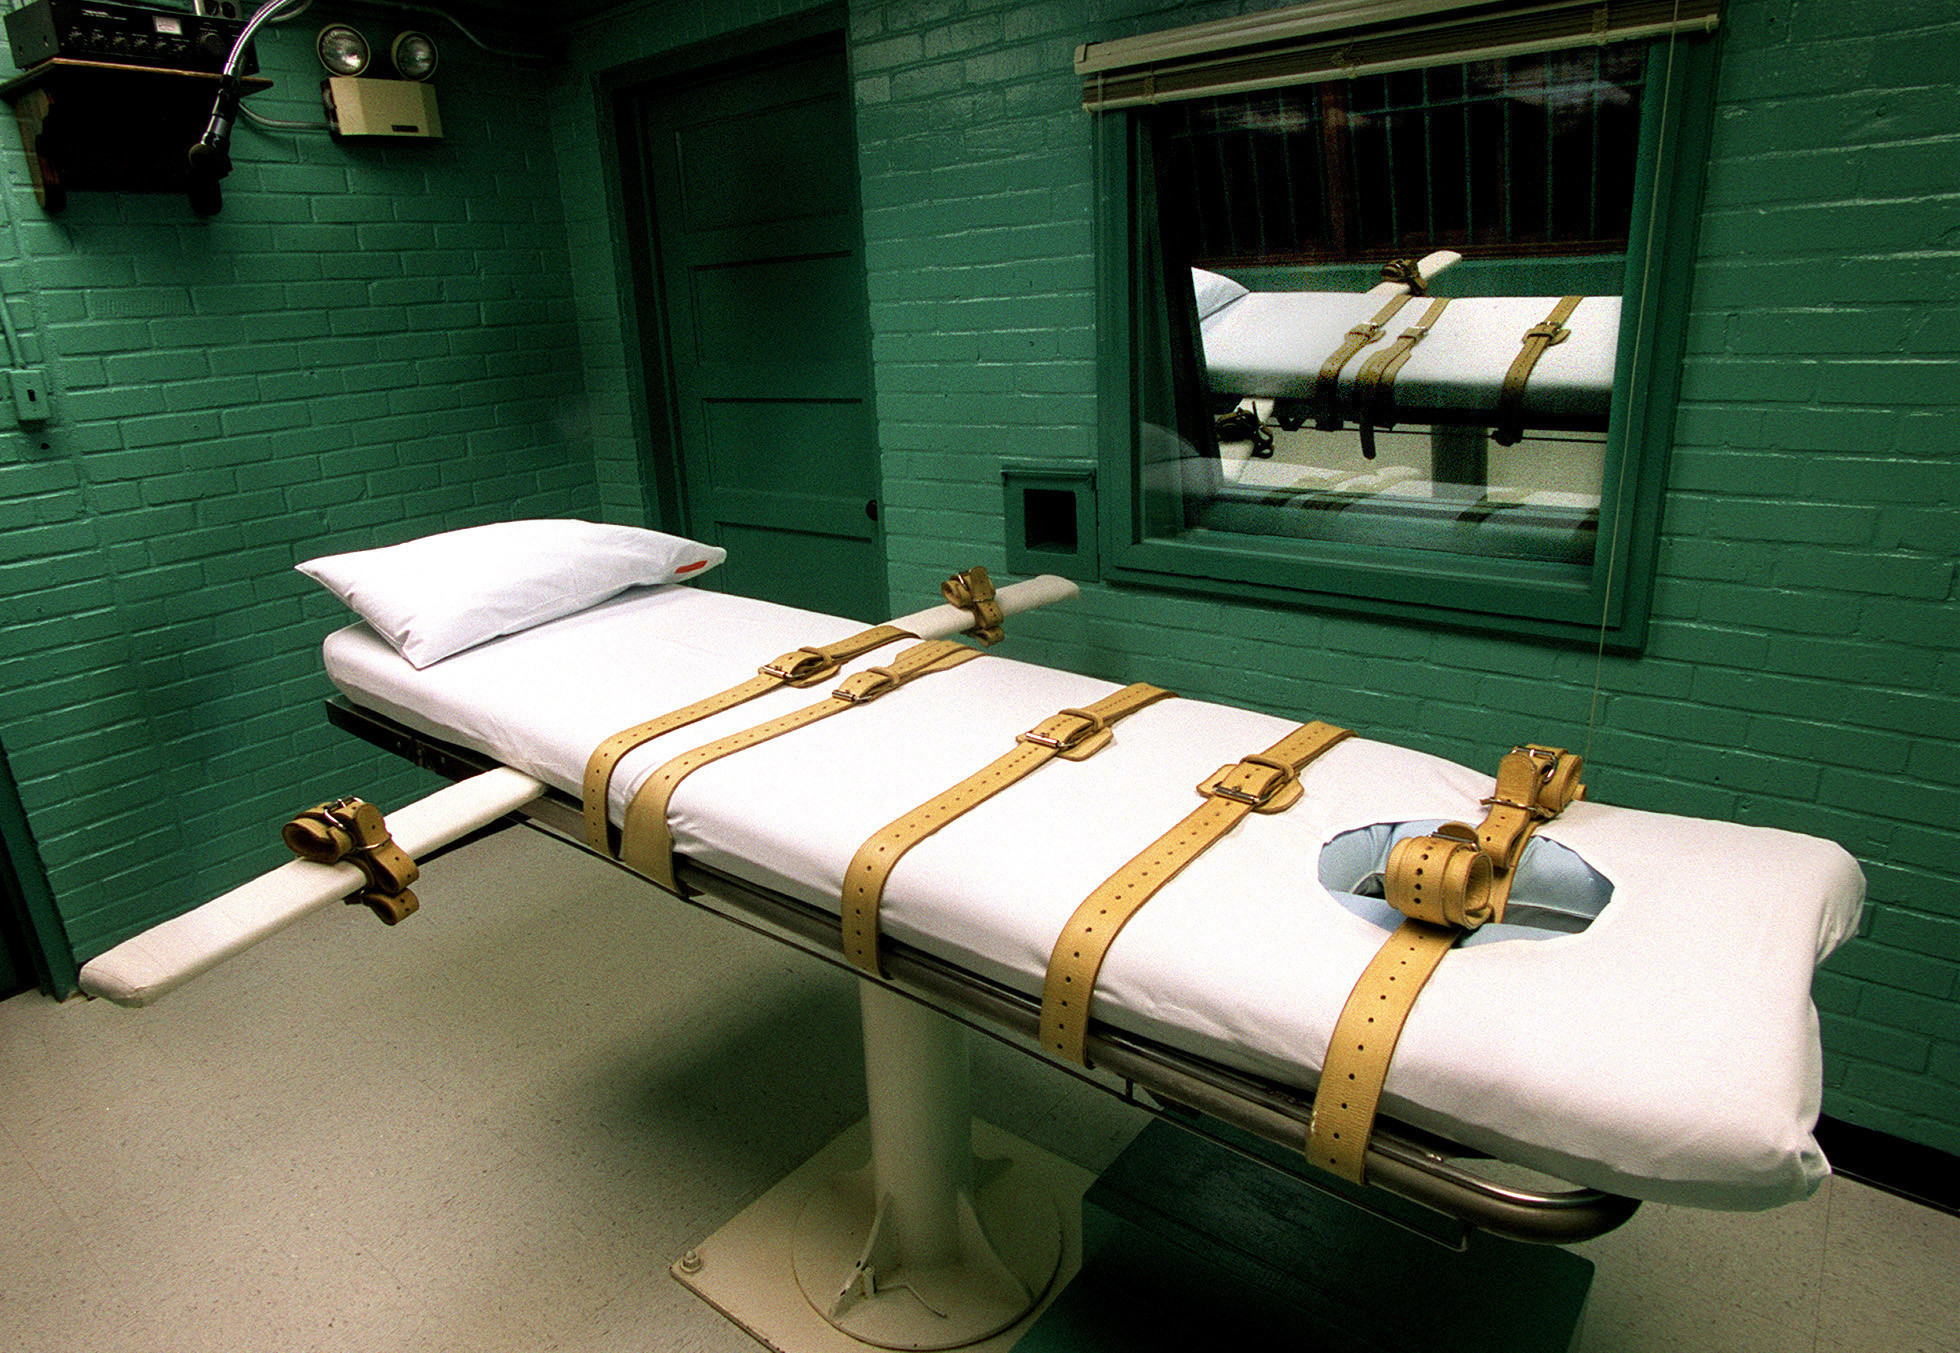 Texas running out of execution drug